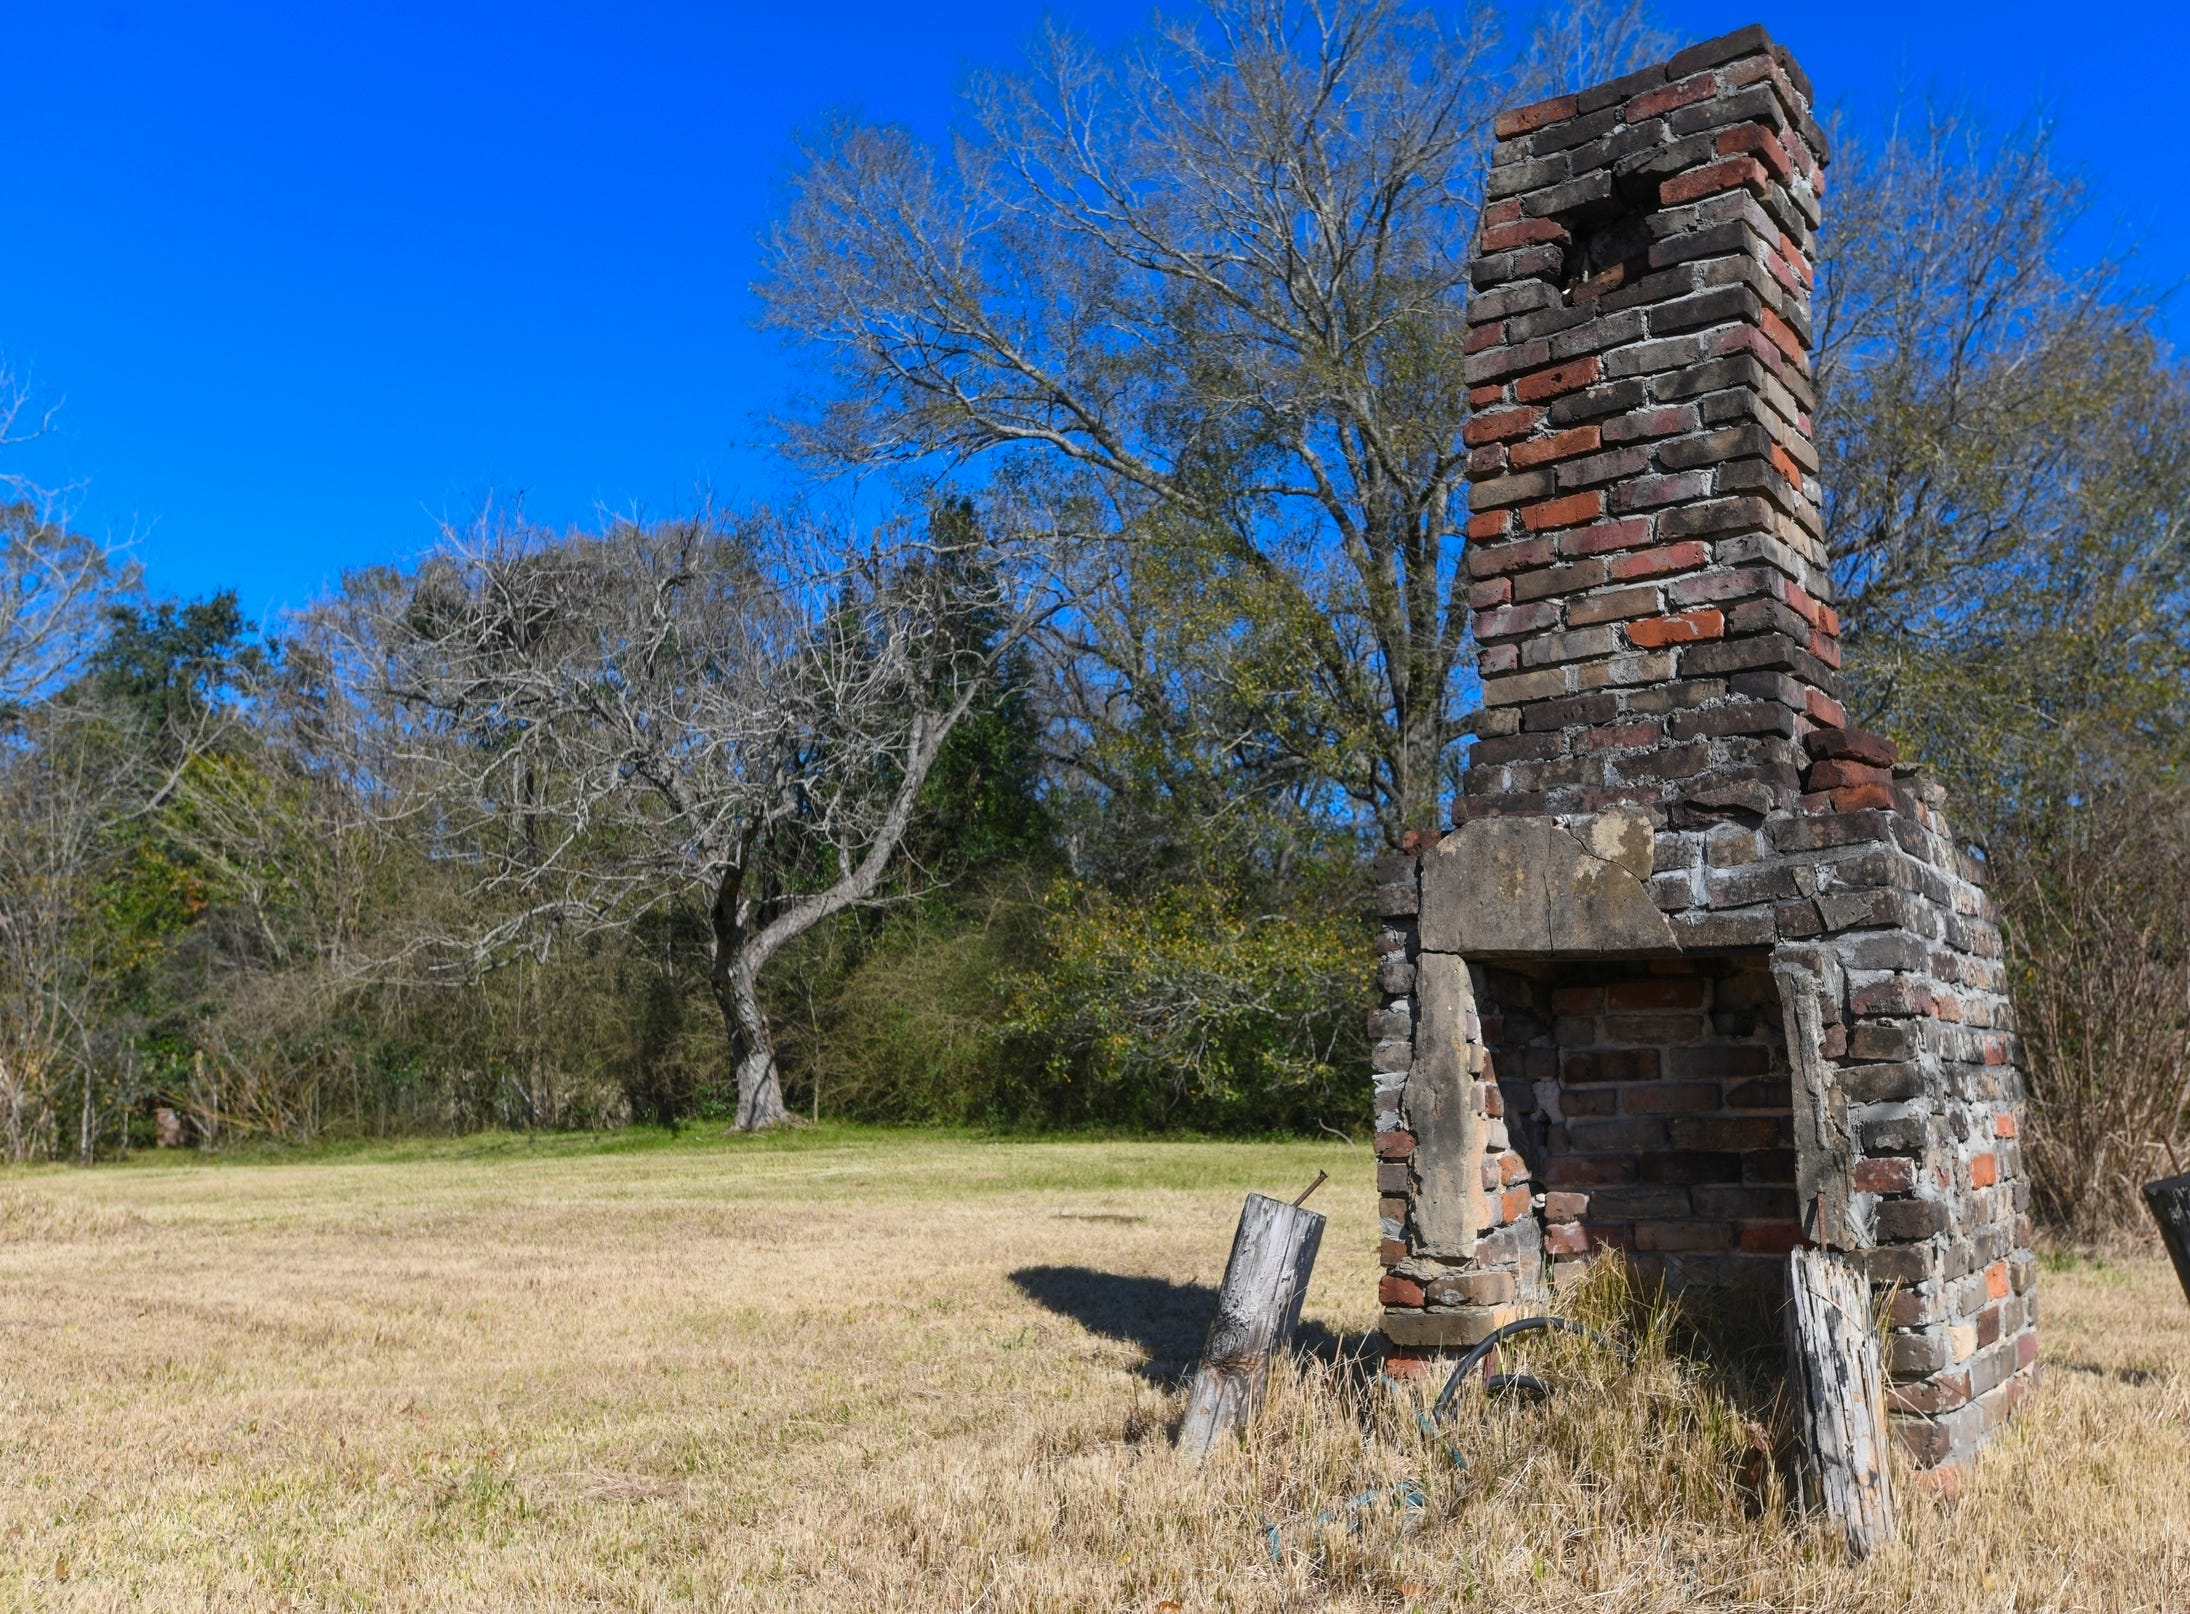 A chimney, the last remaining original structure from the days when survivors of the Clotilda, the last known slave ship brought into the United States, inhabited the area, stands in an abandoned lot in Africatown in Mobile, Ala., on Tuesday, Jan. 29, 2019. After years of watching the steady decline, descendants of the freed slaves who established Africatown are trying to create new ties and, perhaps, rebuild a community that's in danger of fading away. (AP Photo/Julie Bennett)